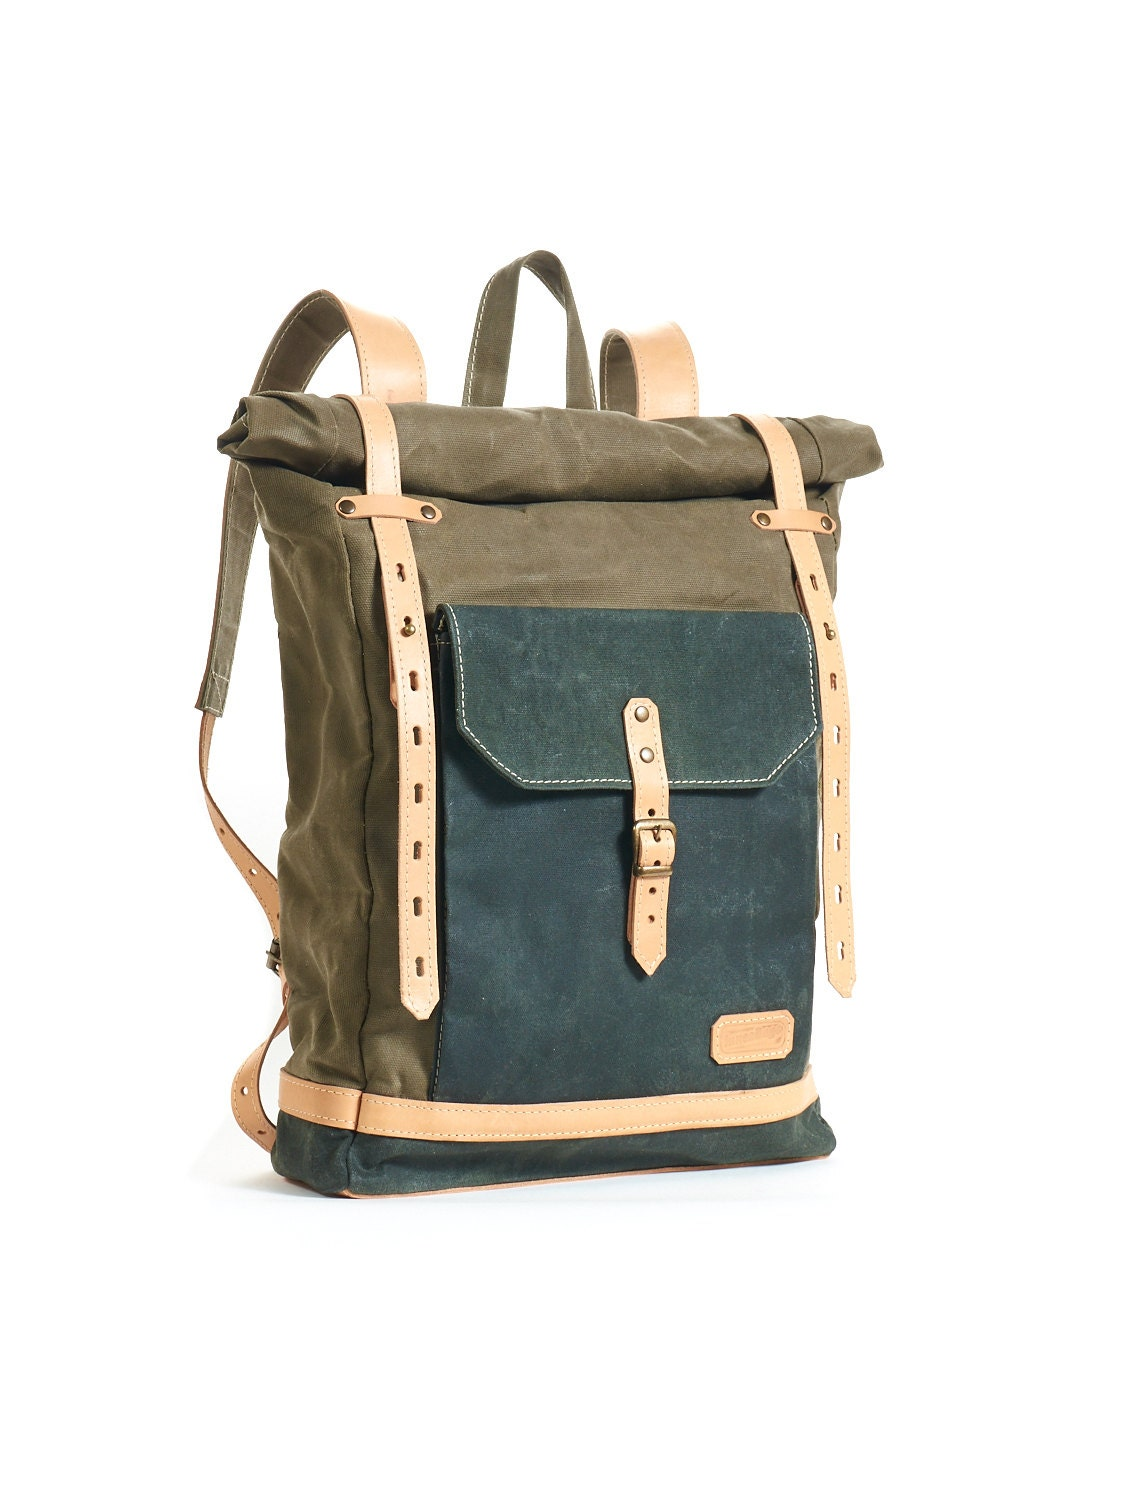 Posters Canvas Art Wood Wall Art. Blue Whales Family Olive Green Backpack. $ 15% Off with code ZAZZFALLPREP. Rich olive green velvety roses flower photo drawstring bag. $ 15% Off with code ZAZZFALLPREP. The Look of Bamboo in Olive Moss Green Wood Grain Drawstring Bag. $